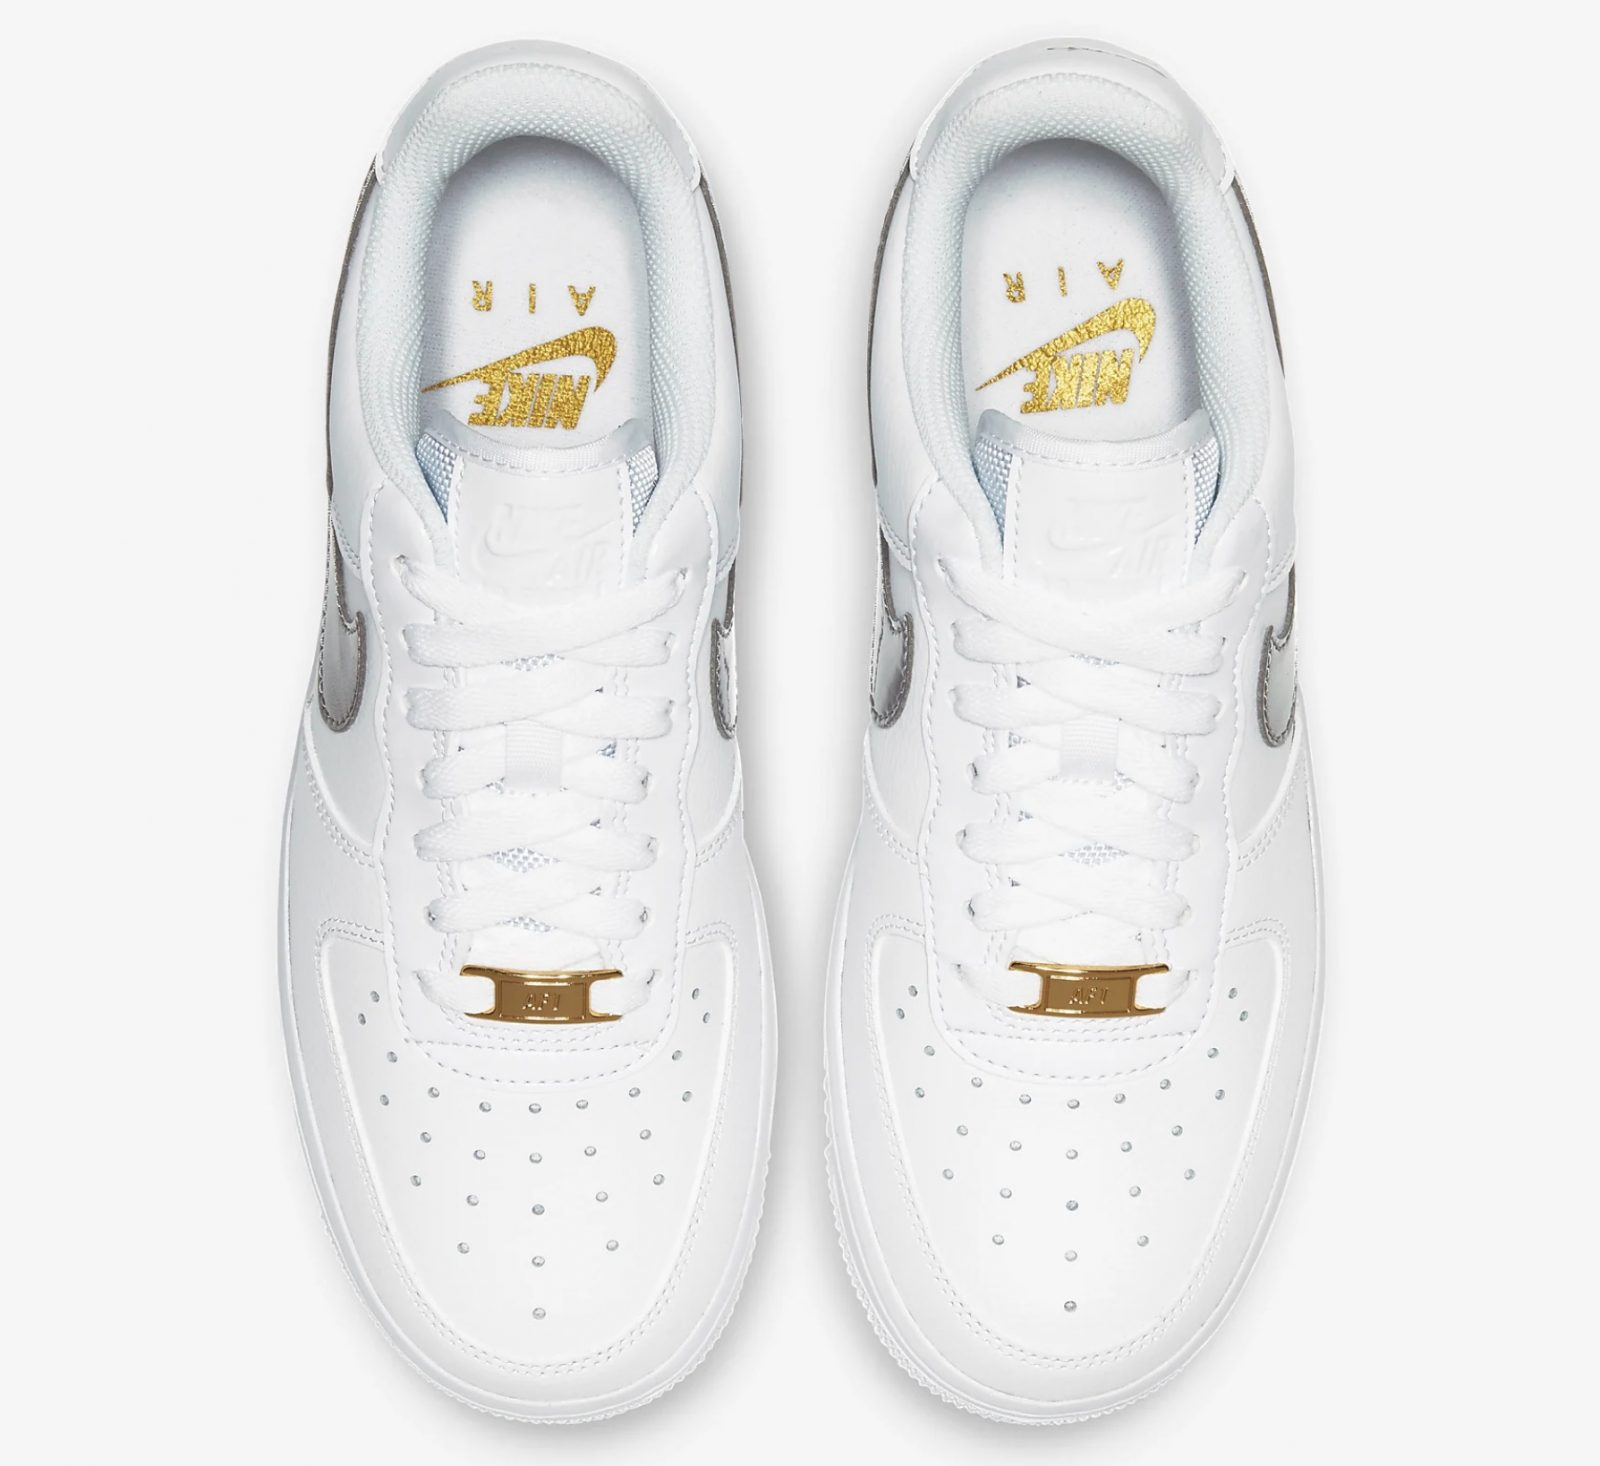 CT2549-100 Nike Air Force 1 Silver Gold laces